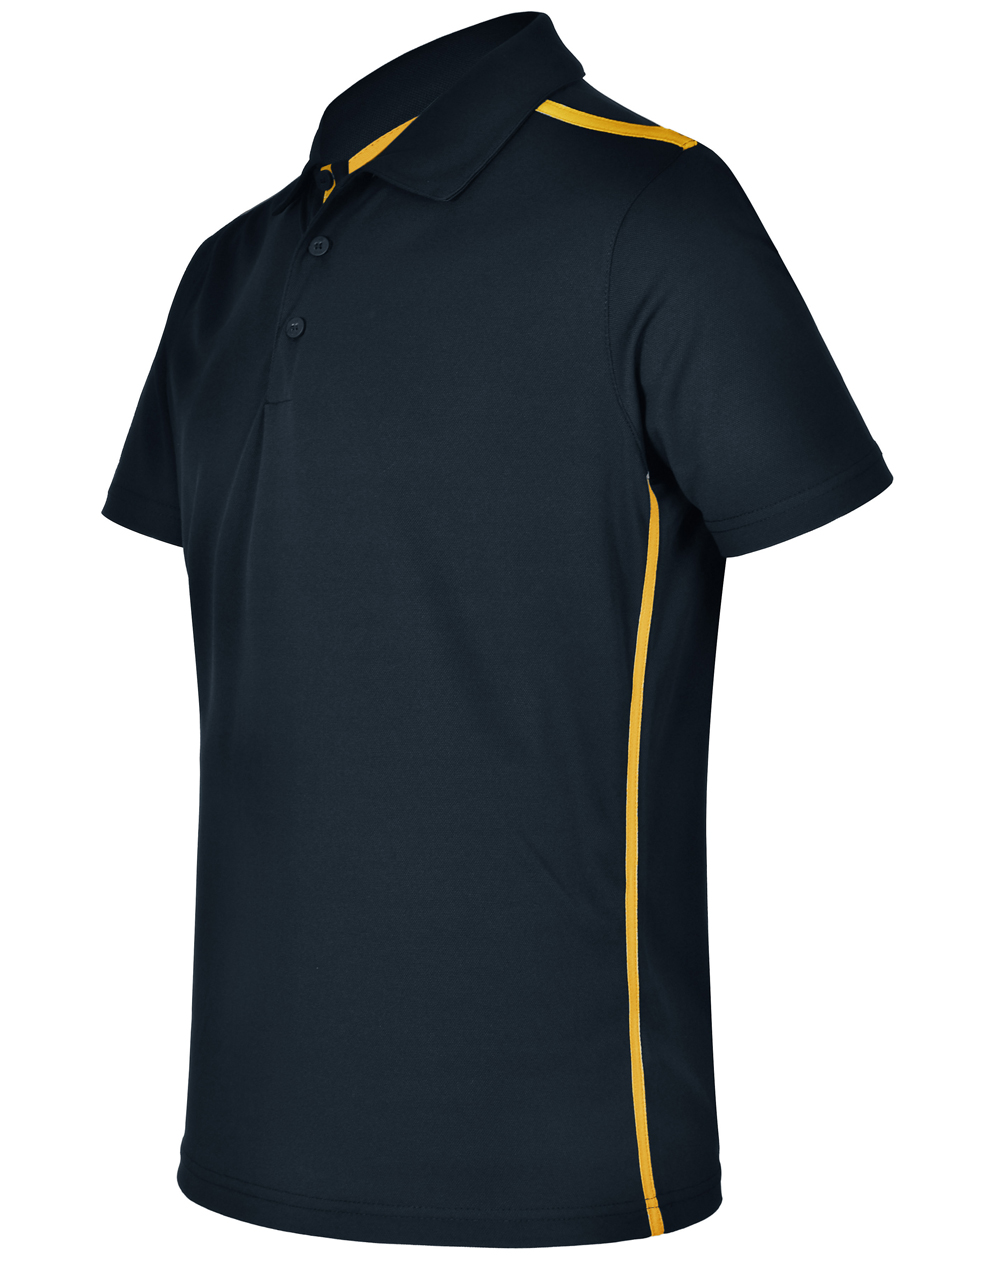 https://s3-ap-southeast-1.amazonaws.com/ws-imgs/POLOSHIRTS/PS83_NavyGold_Side.jpg